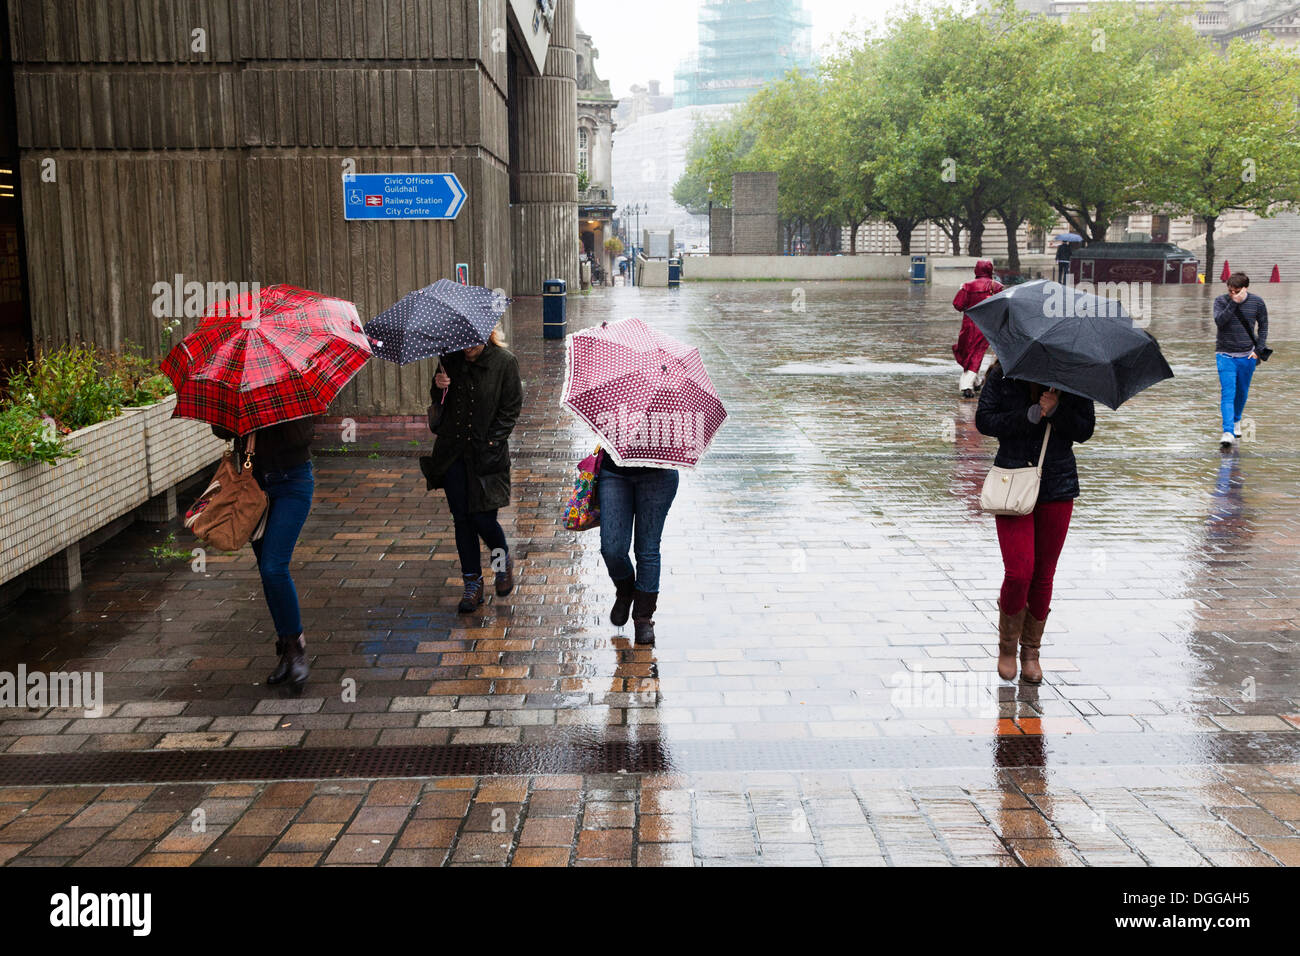 Four women with umbrellas head down against the wind and  rain in town. - Stock Image